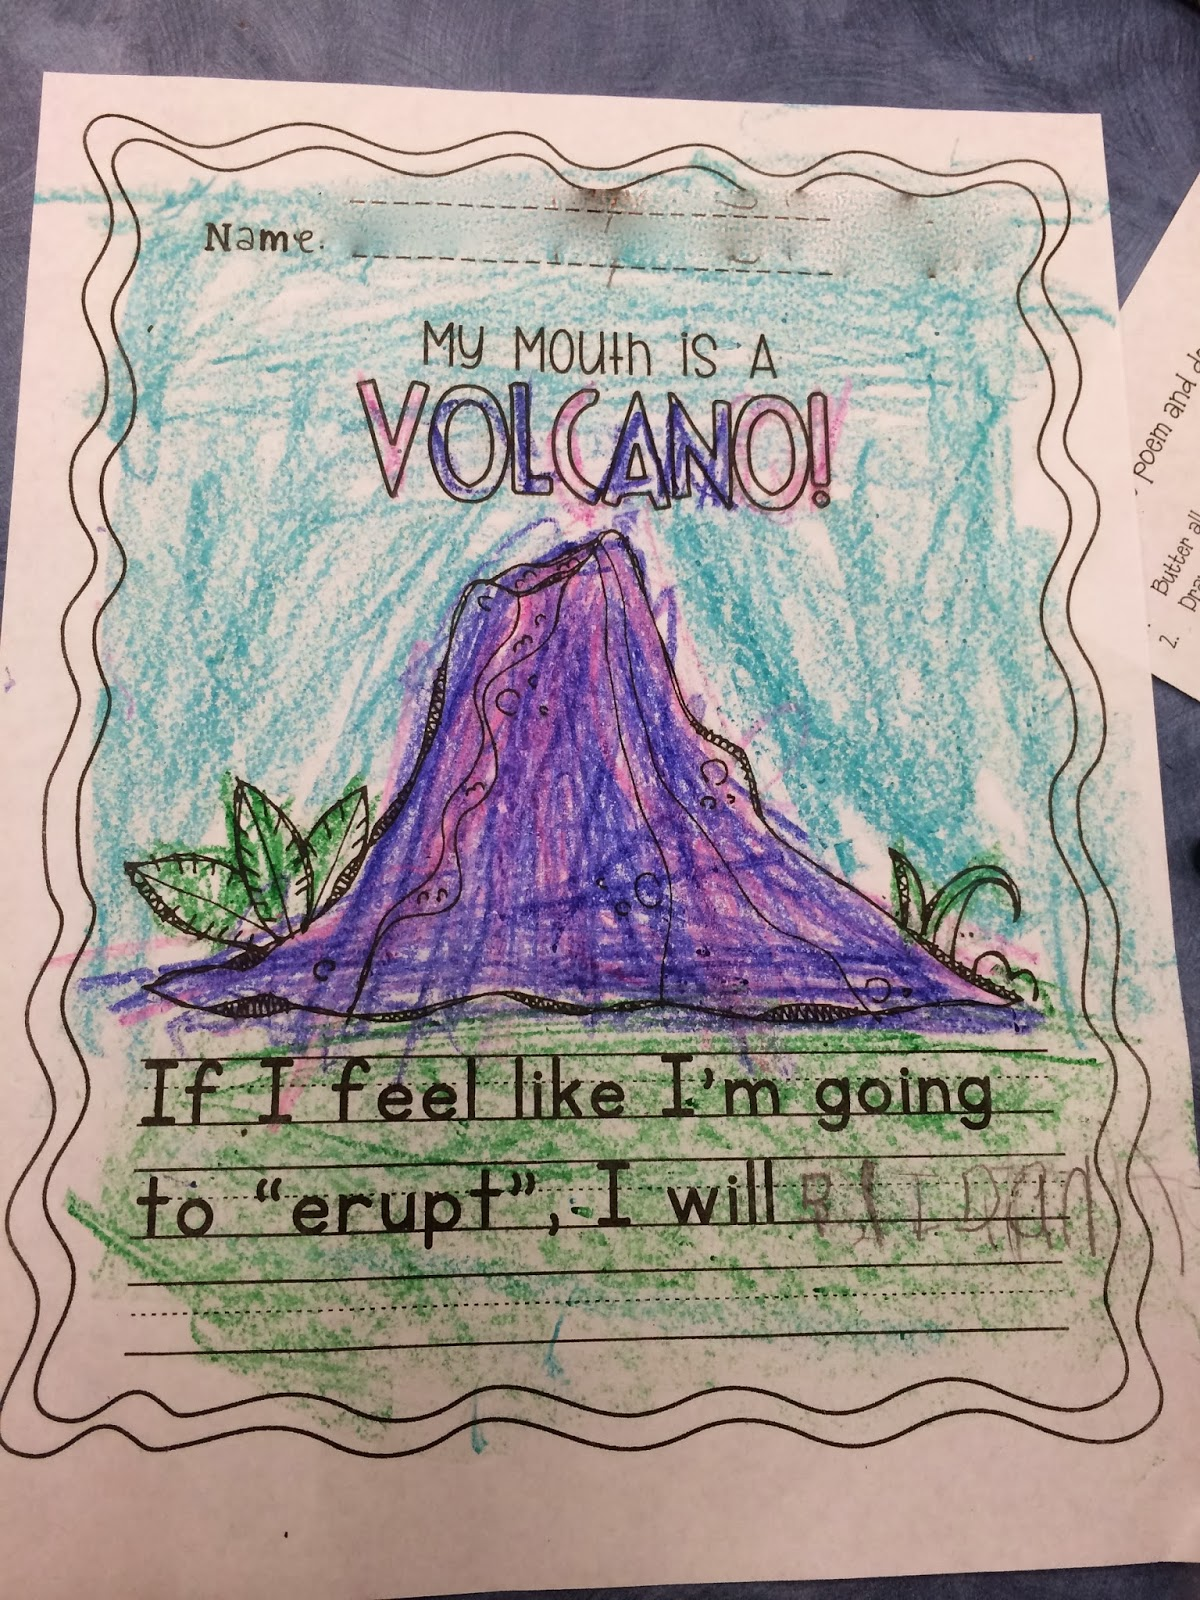 My mouth is a volcano essay